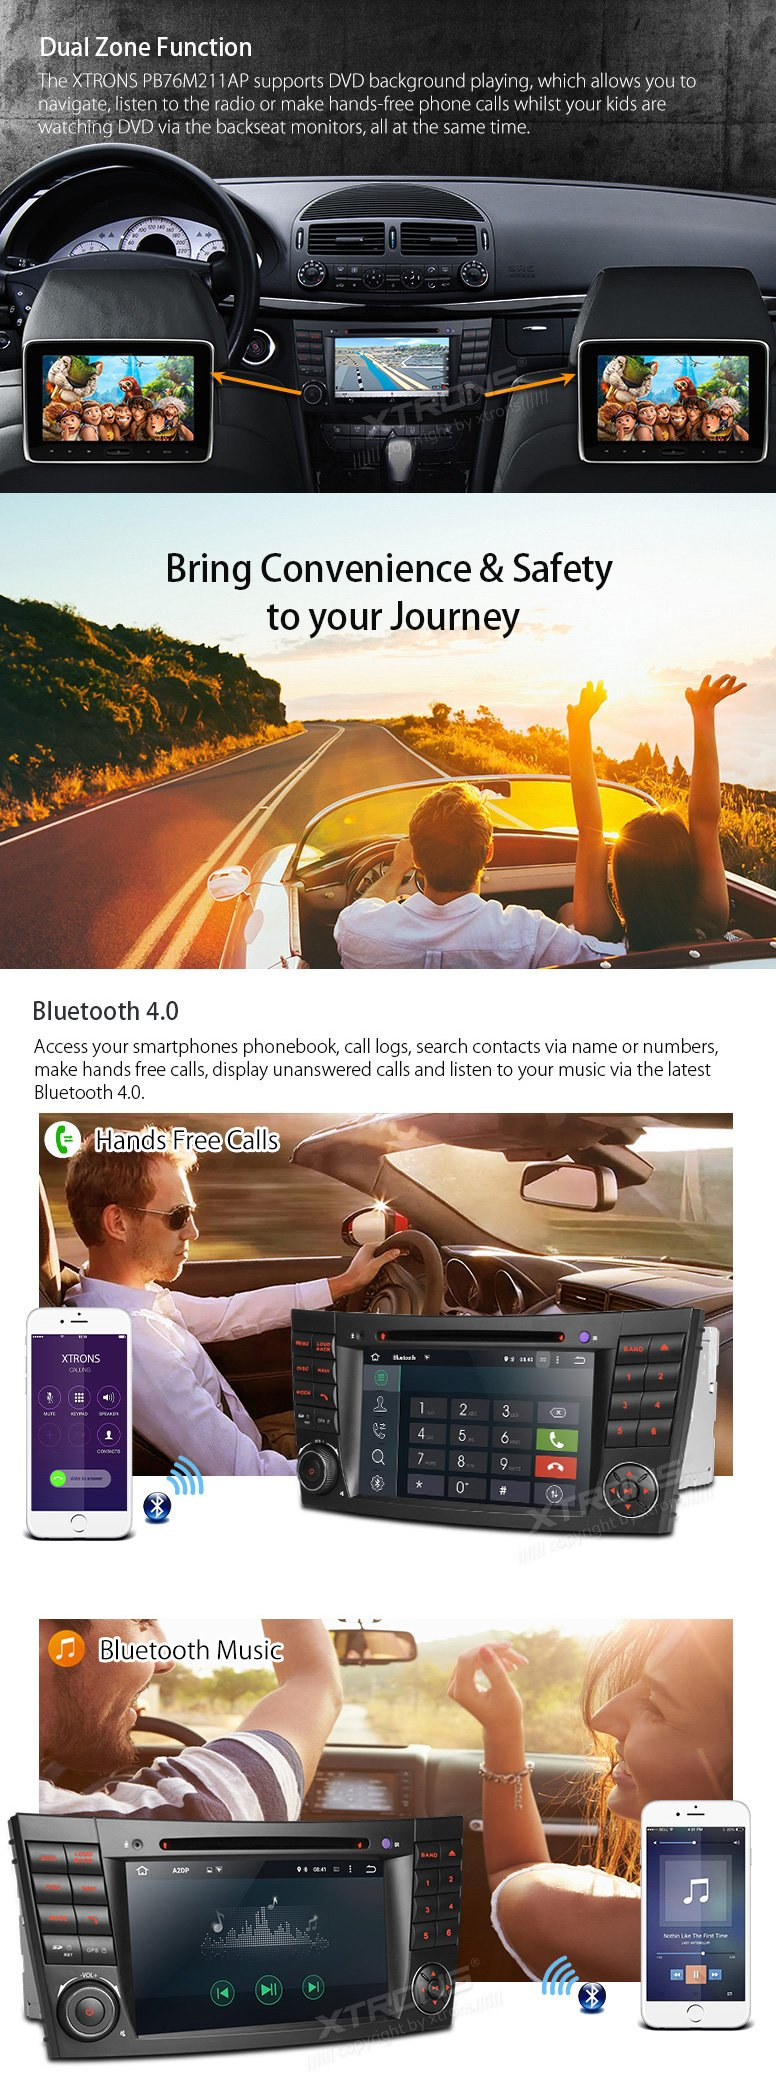 XTRONS Android 6.0 Octa-Core 64Bit 7 Inch Capacitive Touch Screen Car Stereo Radio DVD Player GPS CANbus Screen Mirroring Function OBD2 Tire Pressure Monitoring for Mercedes-Benz E-Class W211 by XTRONS (Image #6)